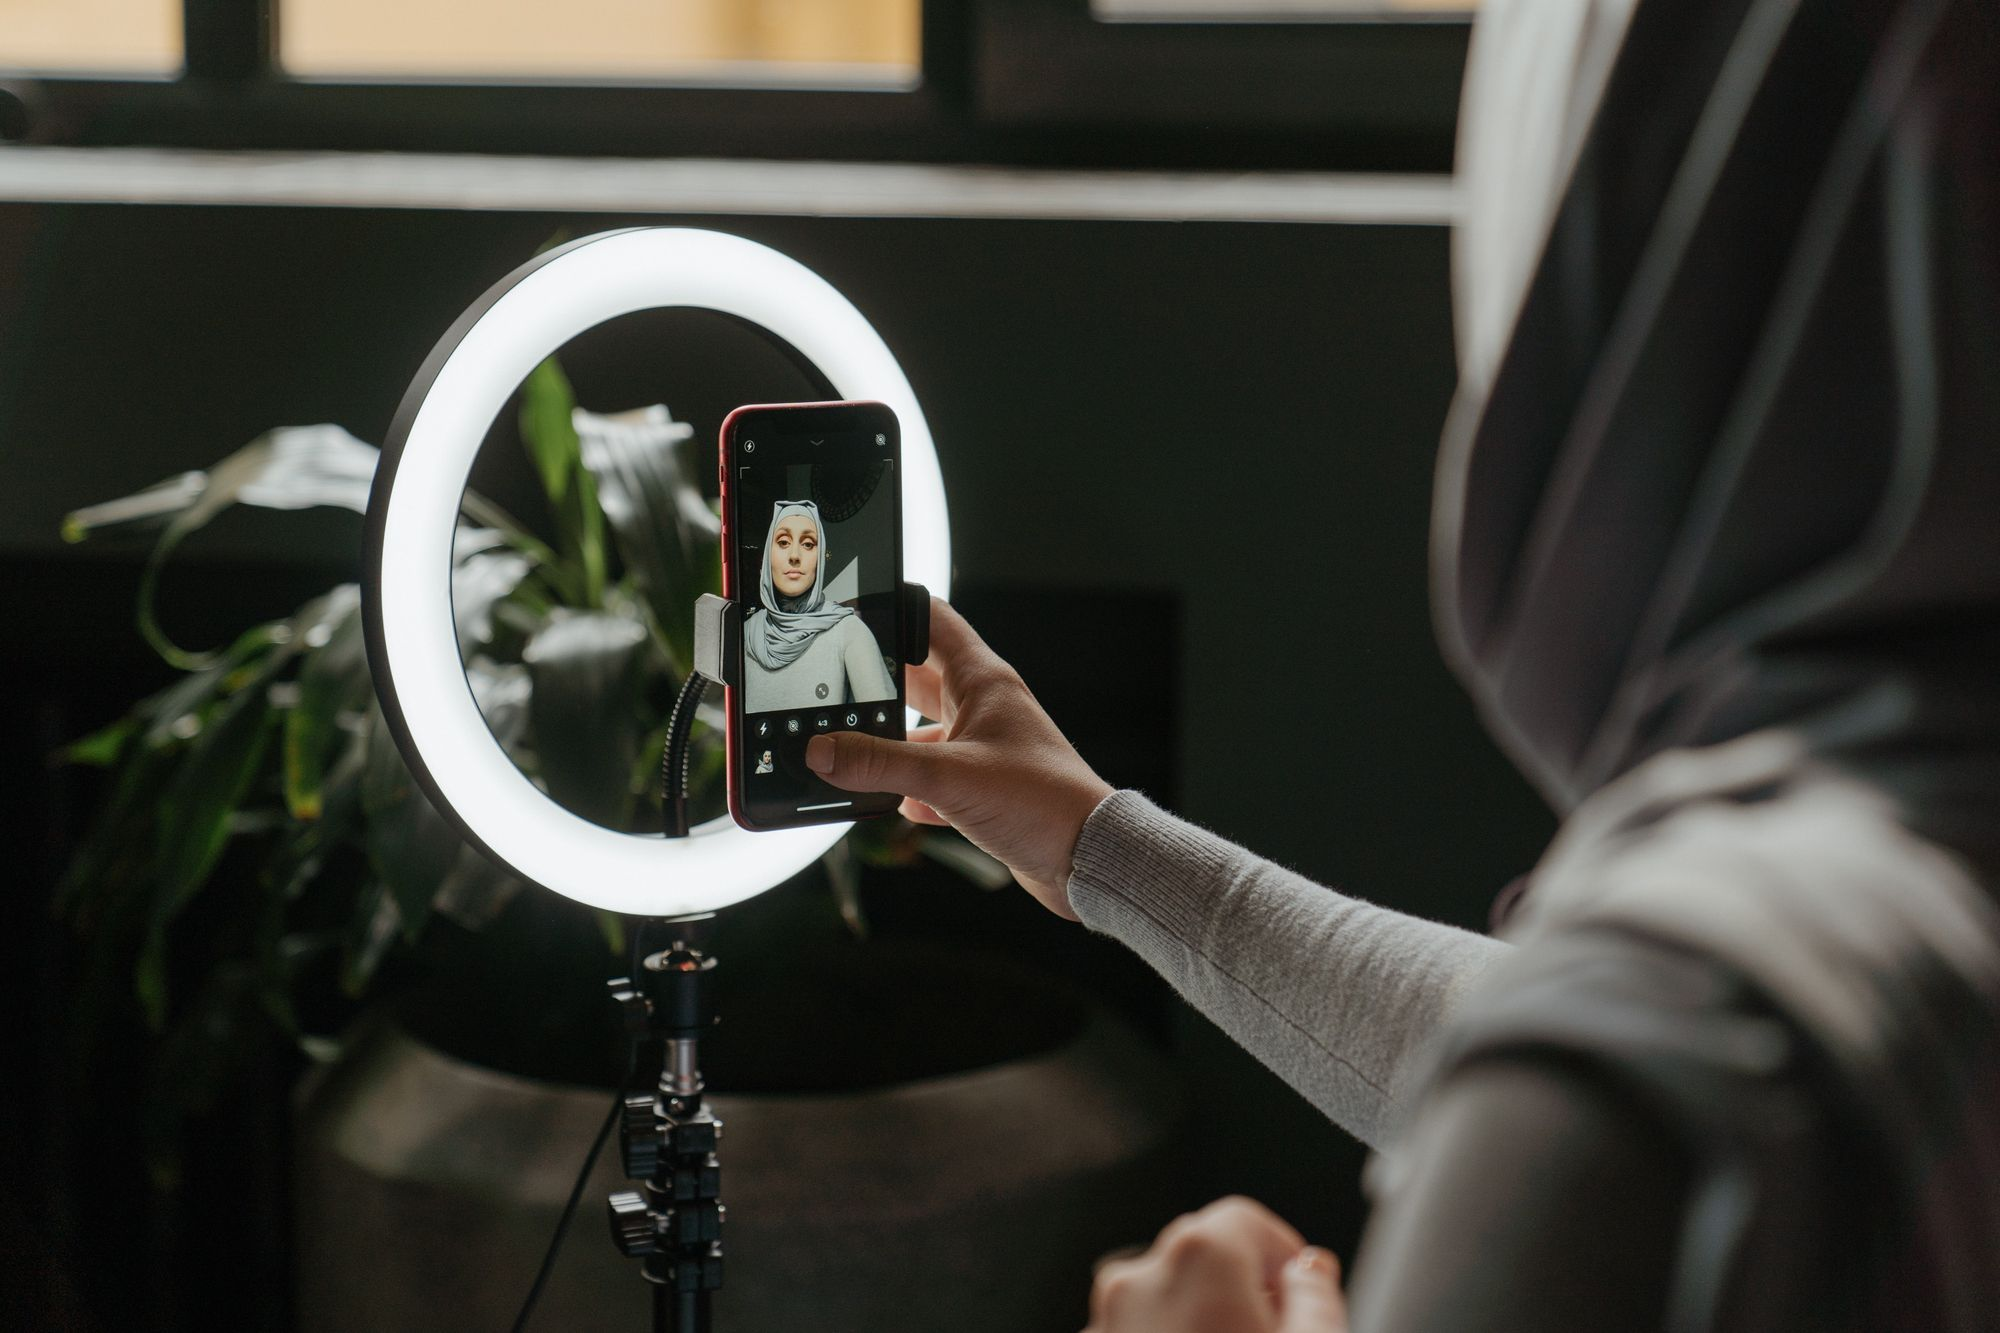 Ring light is the perfect lighting setup for beauty vloggers